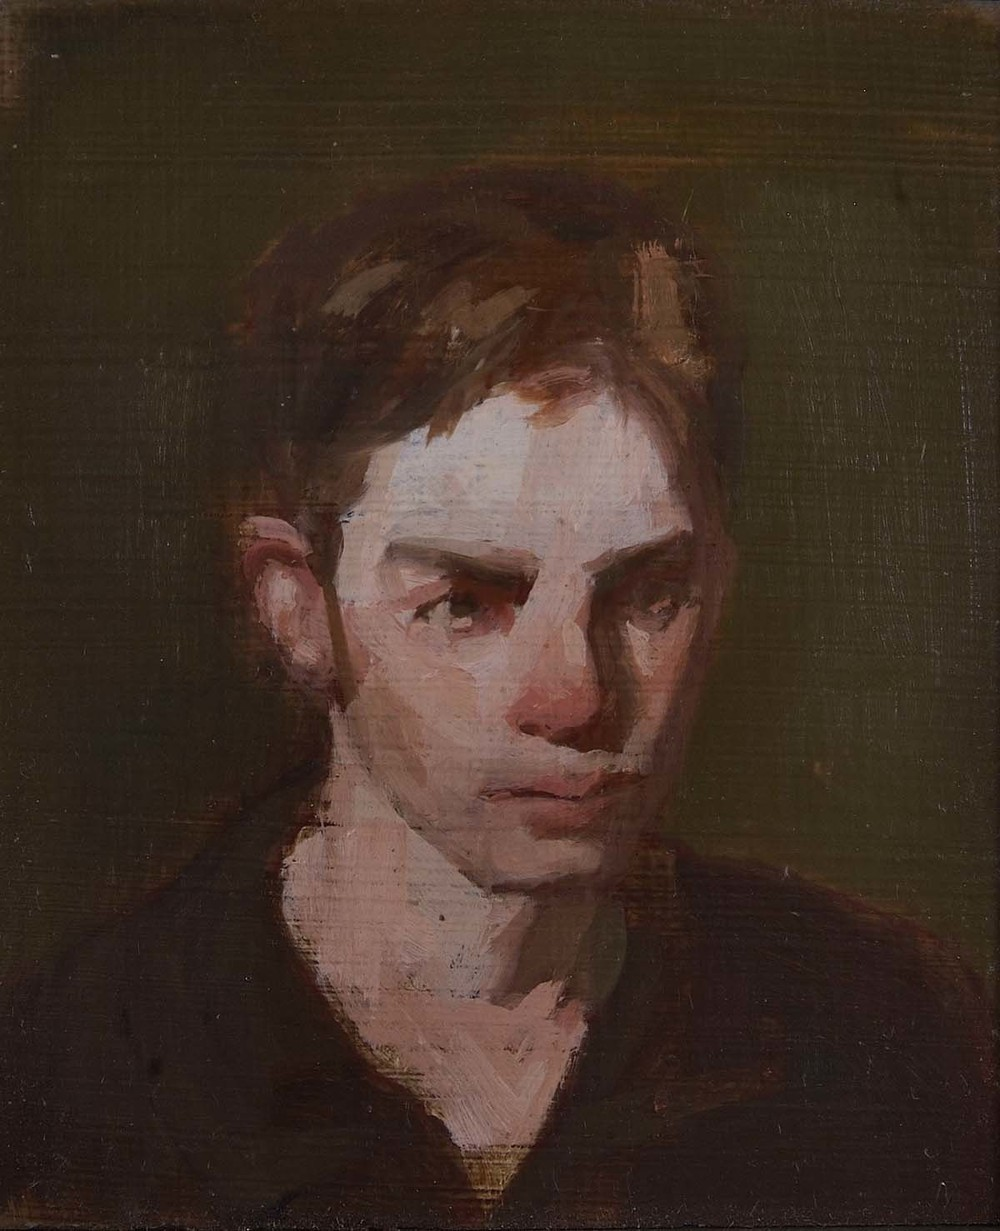 Portrait of M. T., 3.5 x 2.75 inches, oil on prepared paper